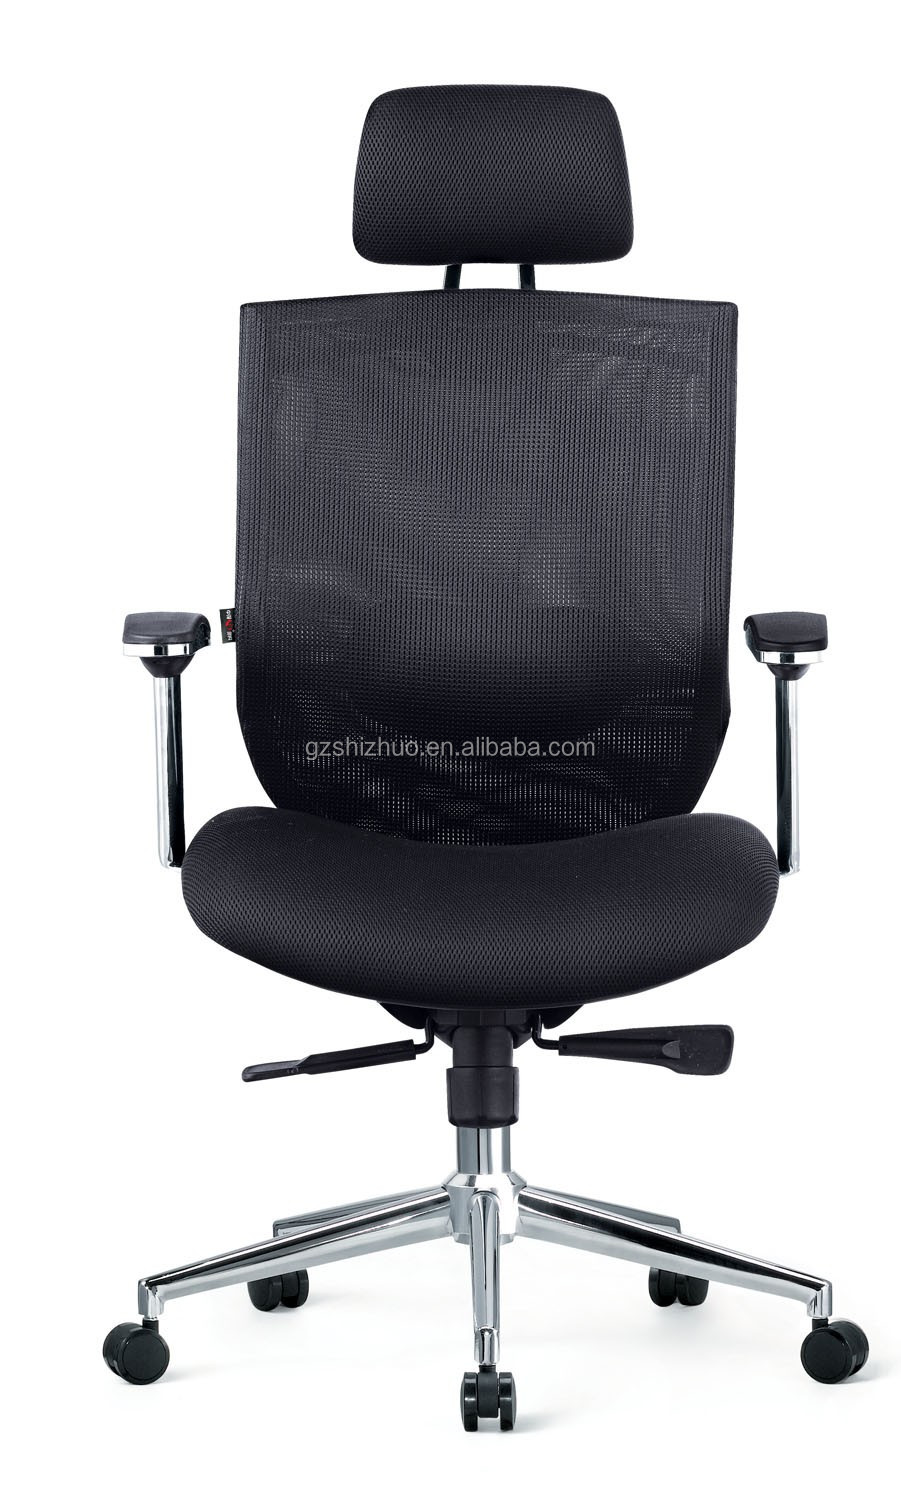 ergonomic mesh chair mesh office chair chair used for teacher product